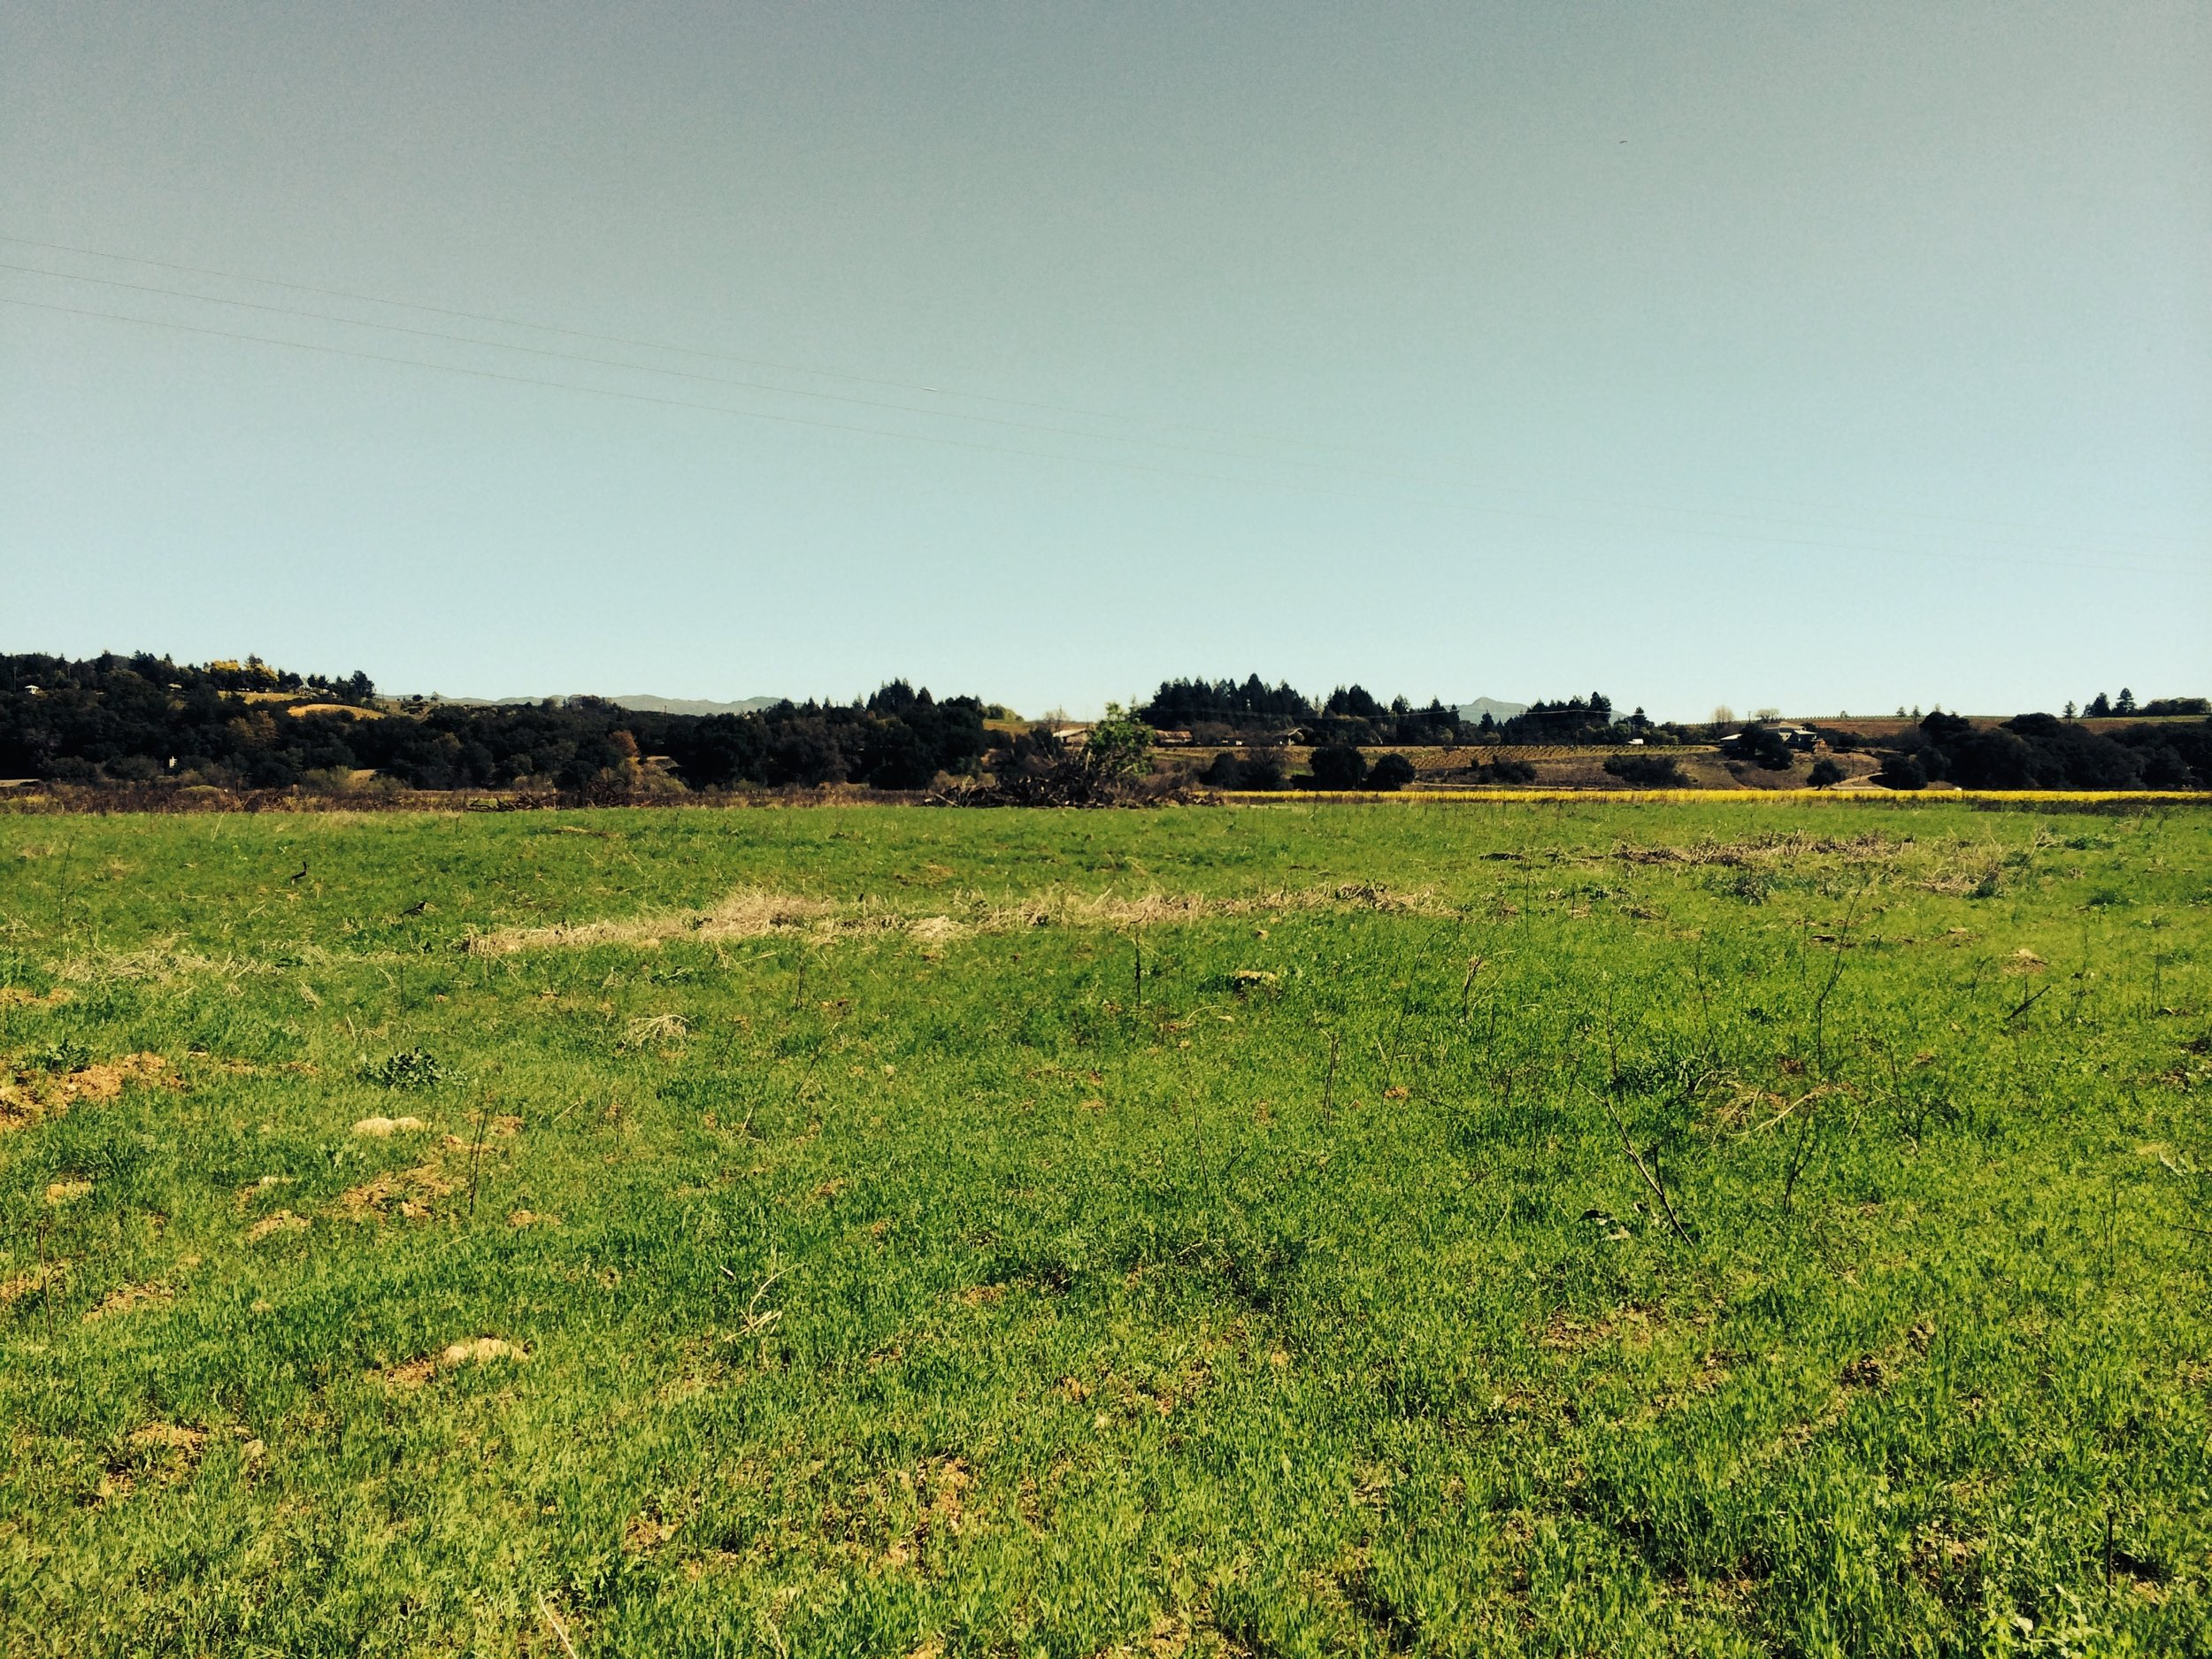 A blank field we will someday turn into Noci. What we didn't see was all the metal buried underground.